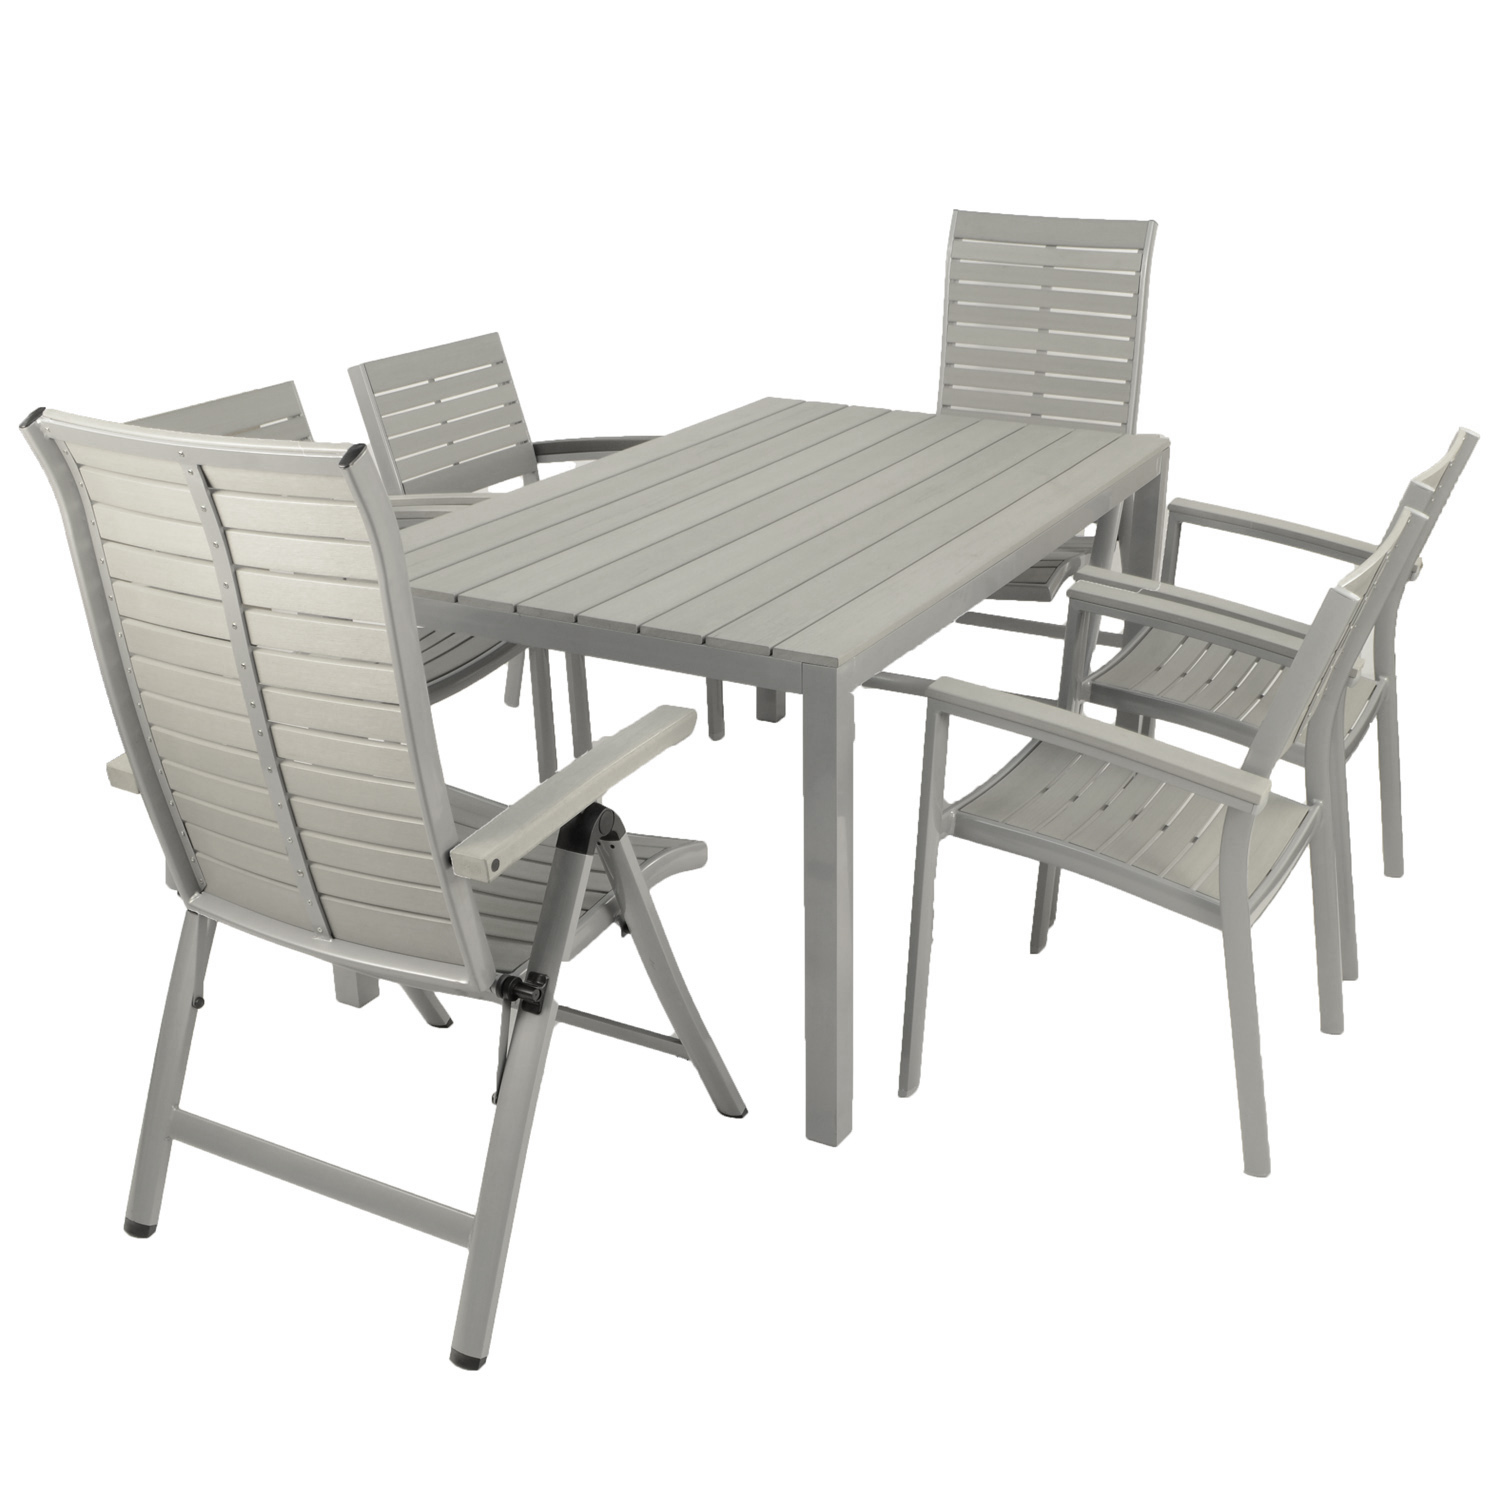 stacking dining chairs uk chaise lounge for patio fontello set with 6